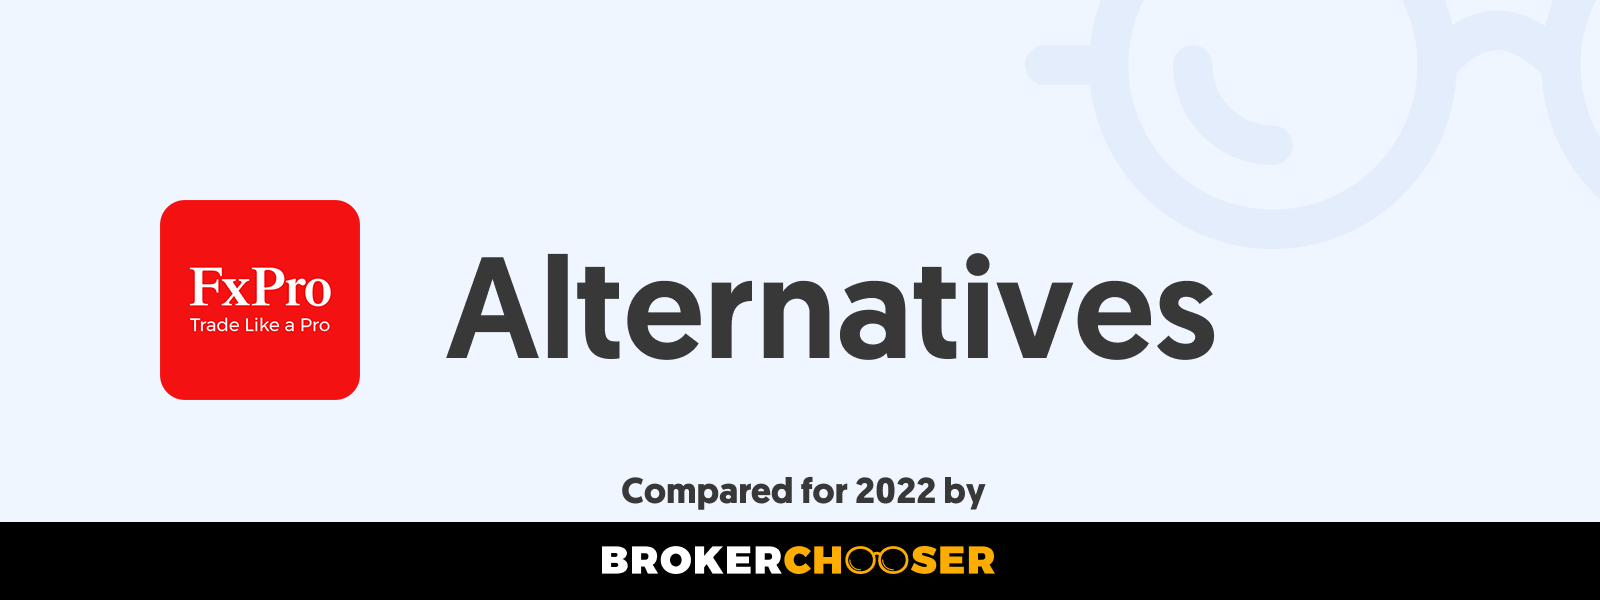 FxPro Alternatives